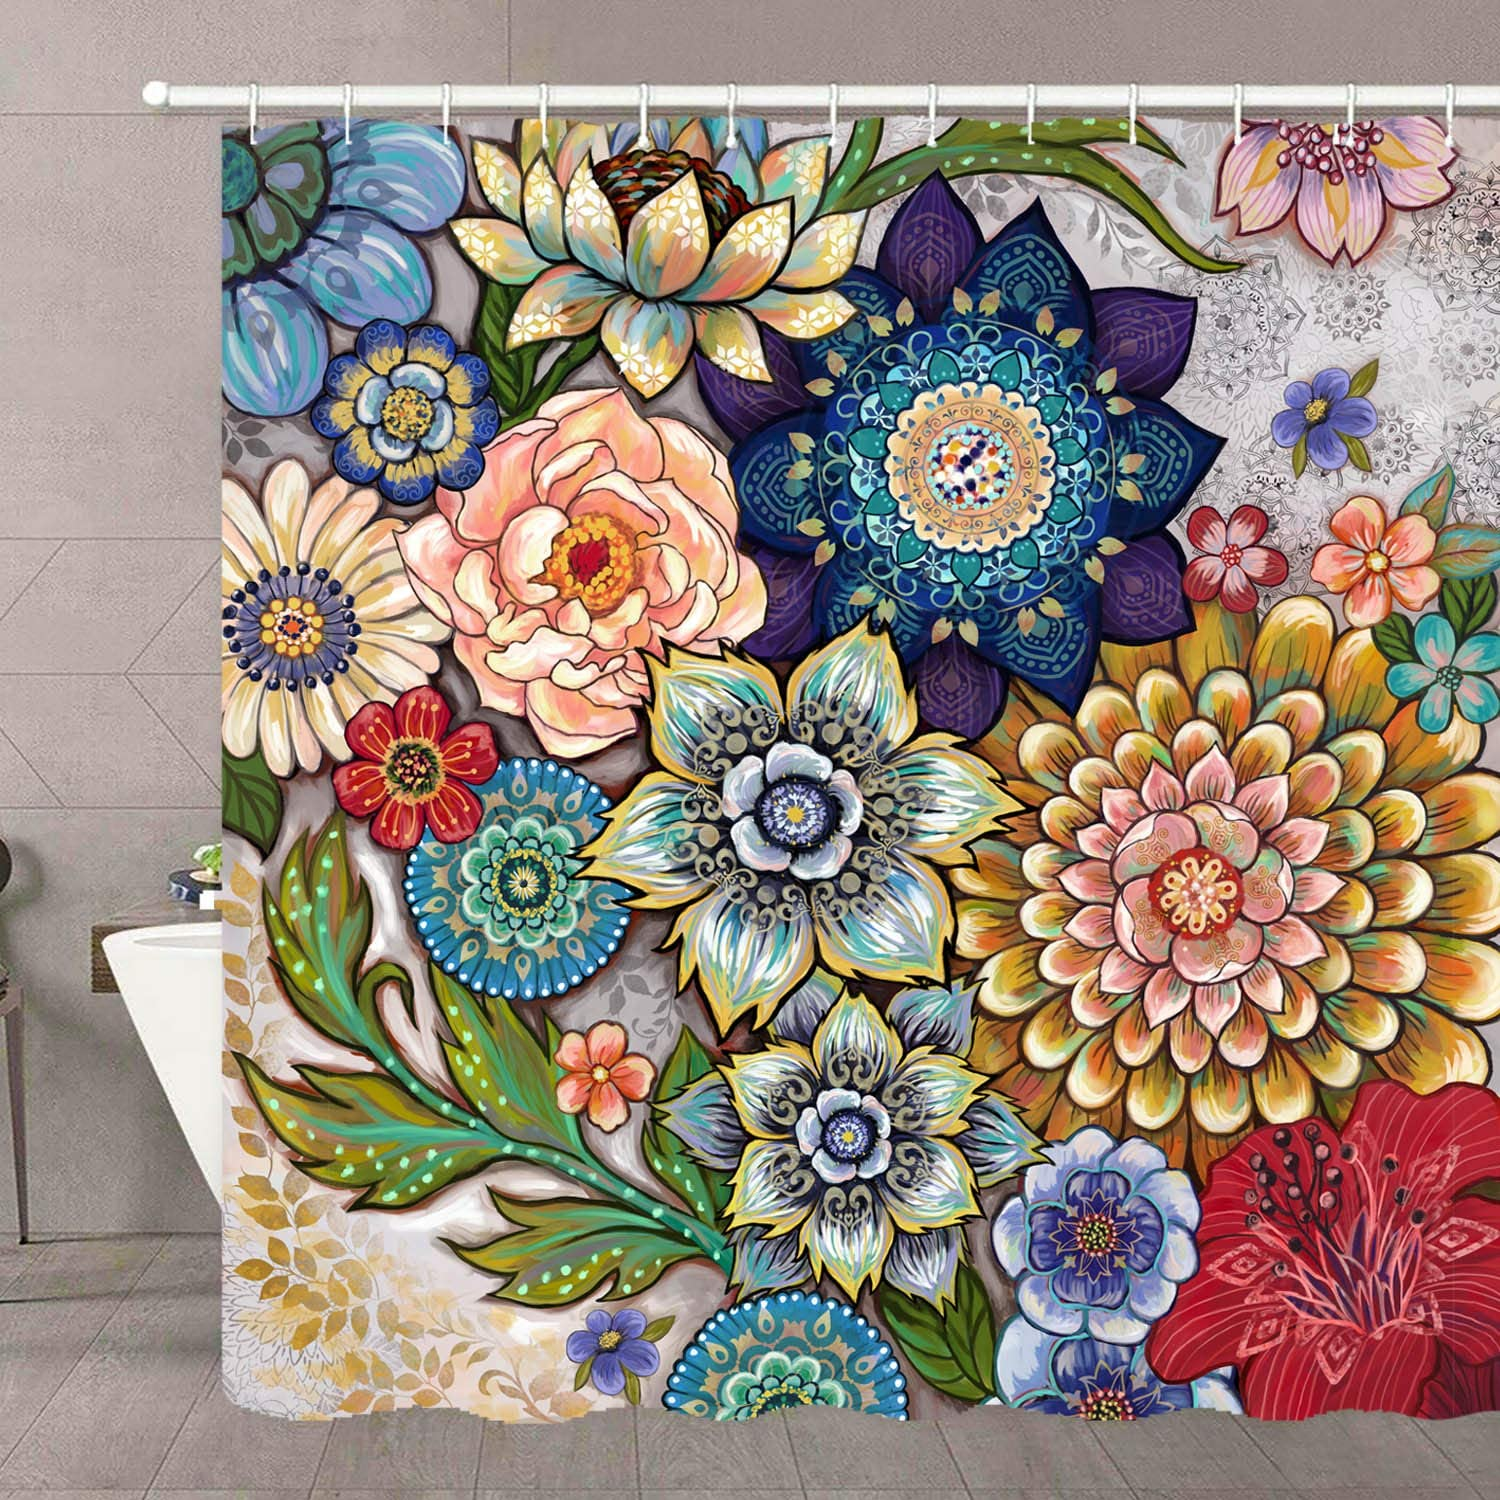 Neasow Boho Floral Shower Curtains for Bathroom, Bright Fabric Blossom Shower Curtain with 12 Hooks, Multi Color 72